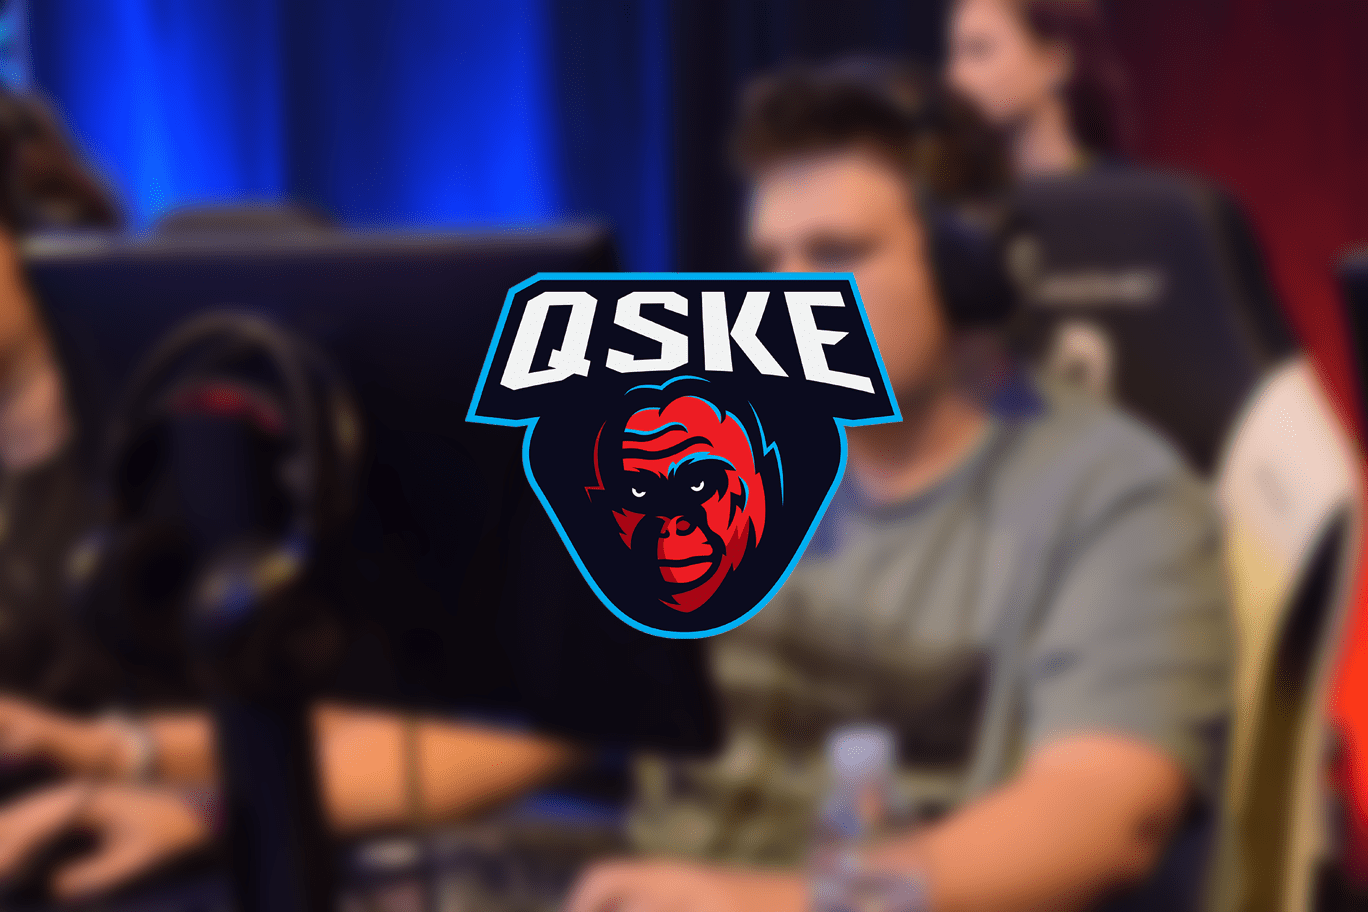 brky - QSKE Gaming